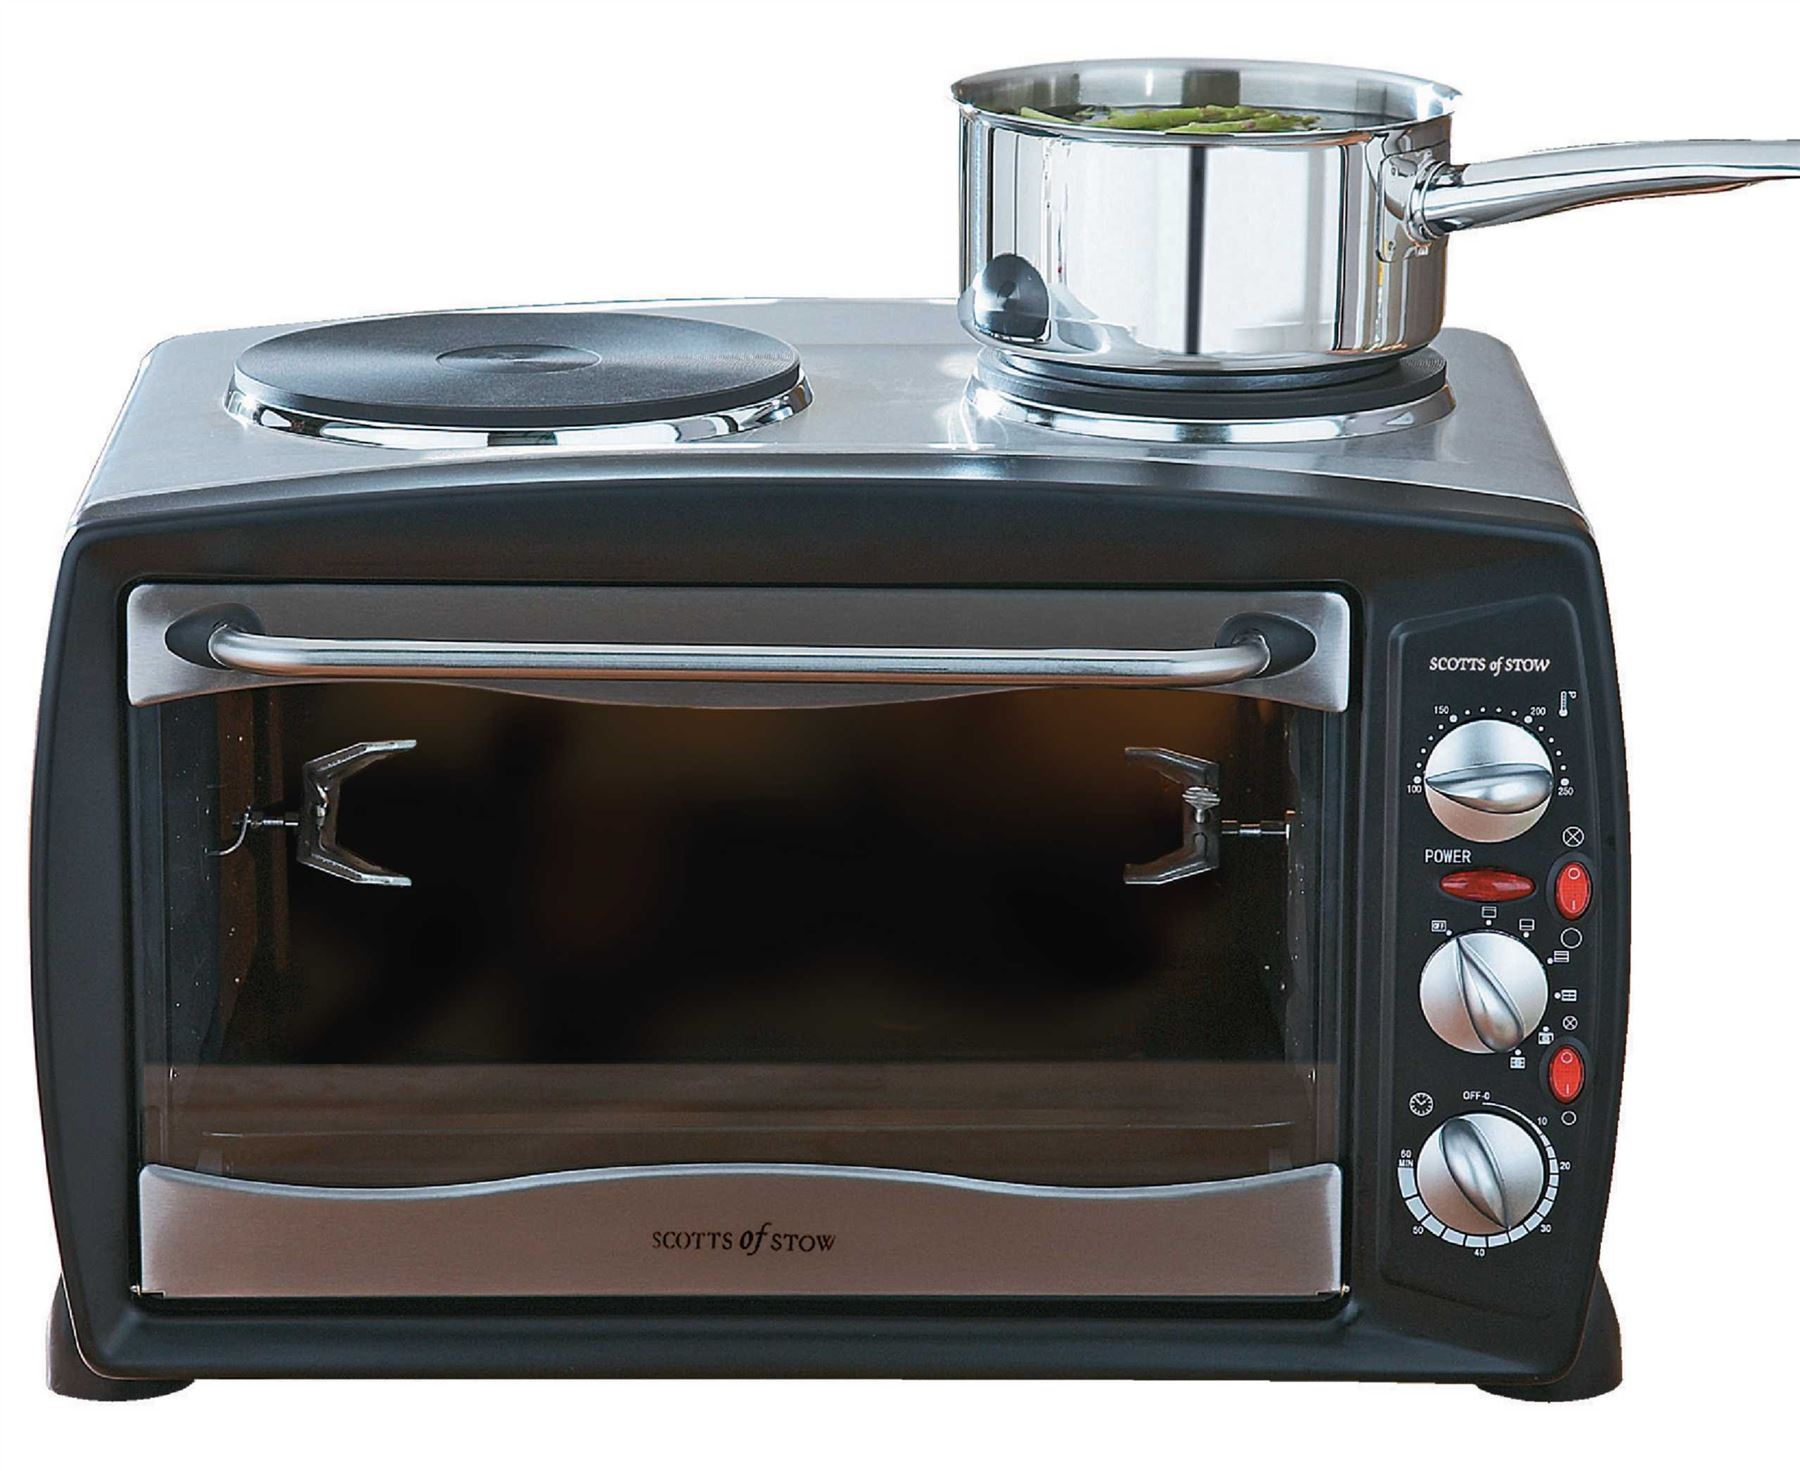 Mini Countertop Stove : ... Steel Mini Oven Compact Countertop Oven 26 Litre 2900W Convection